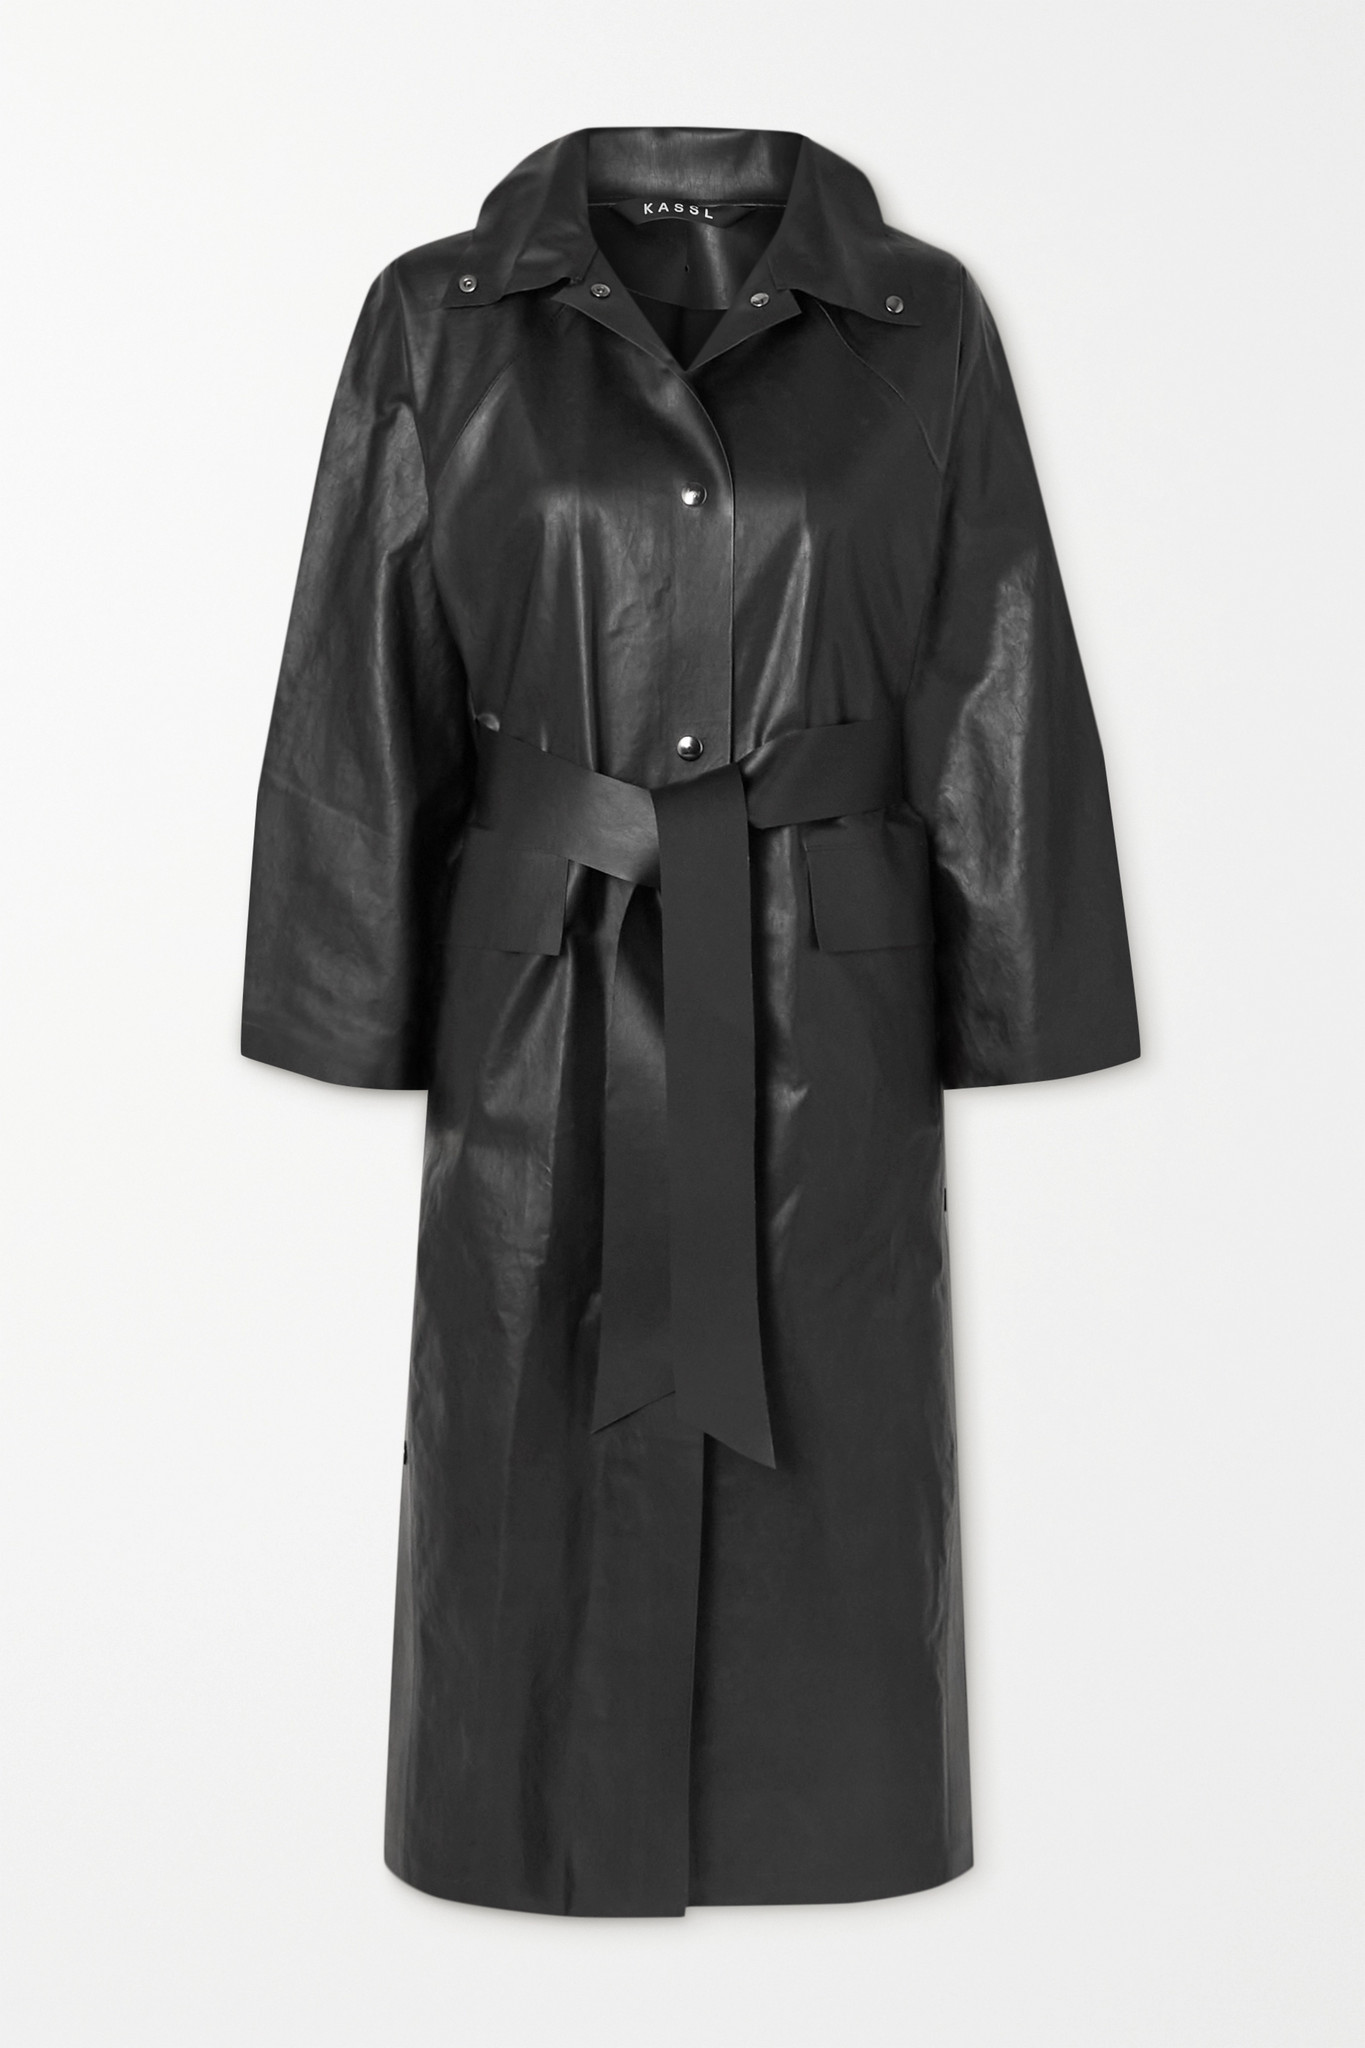 KASSL EDITIONS - Belted Coated Cotton-blend Trench Coat - Black - small